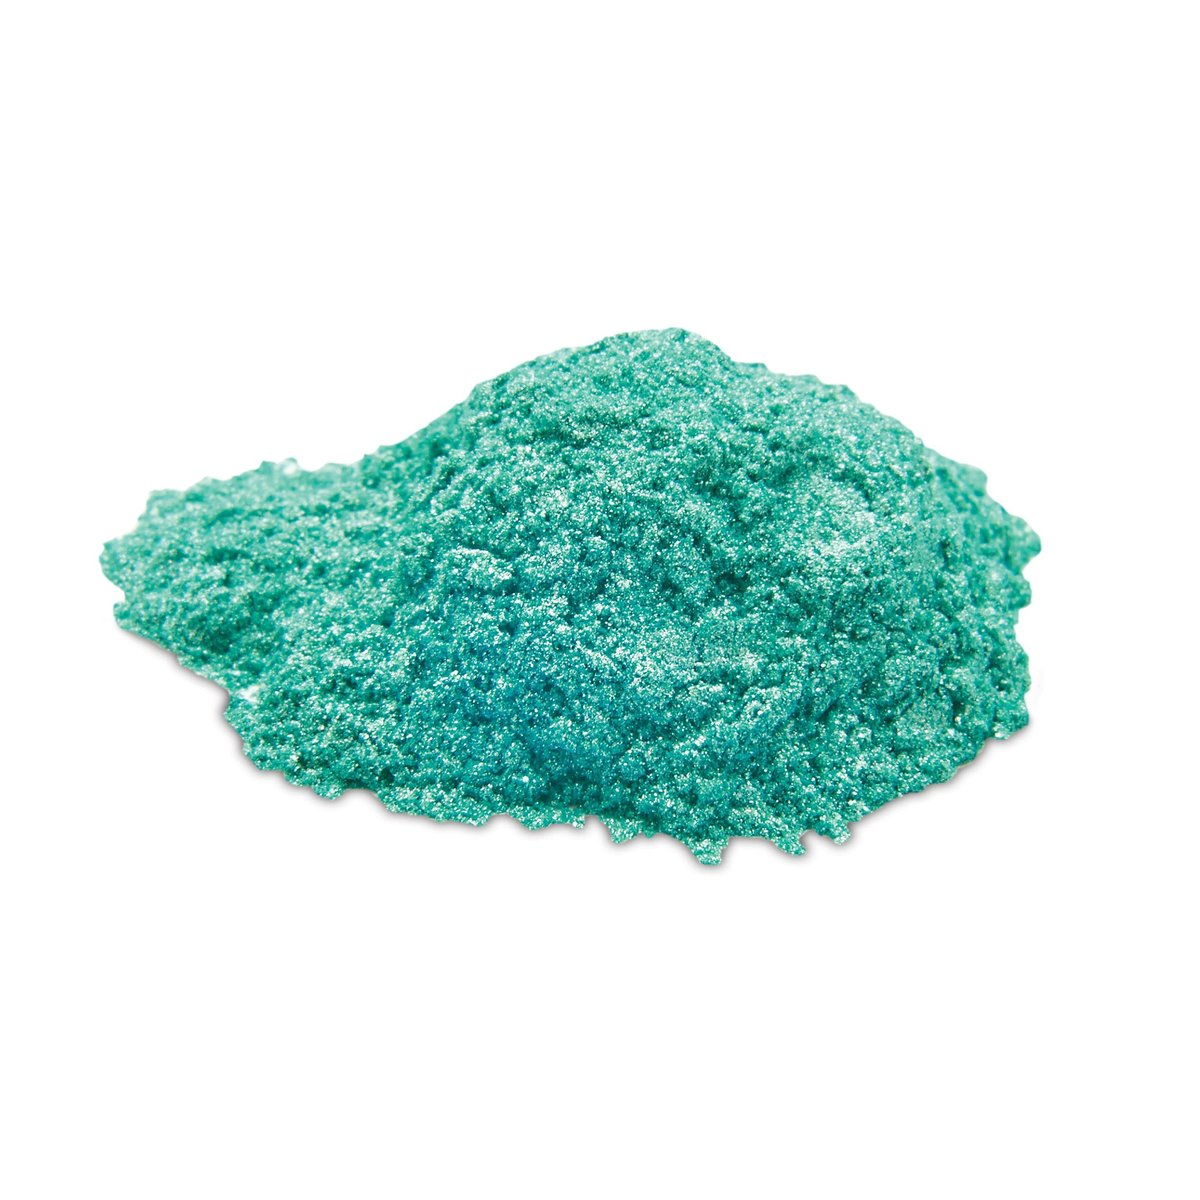 View a Larger Image of PolyColor Resin Powder Blue-Green 15-Gram